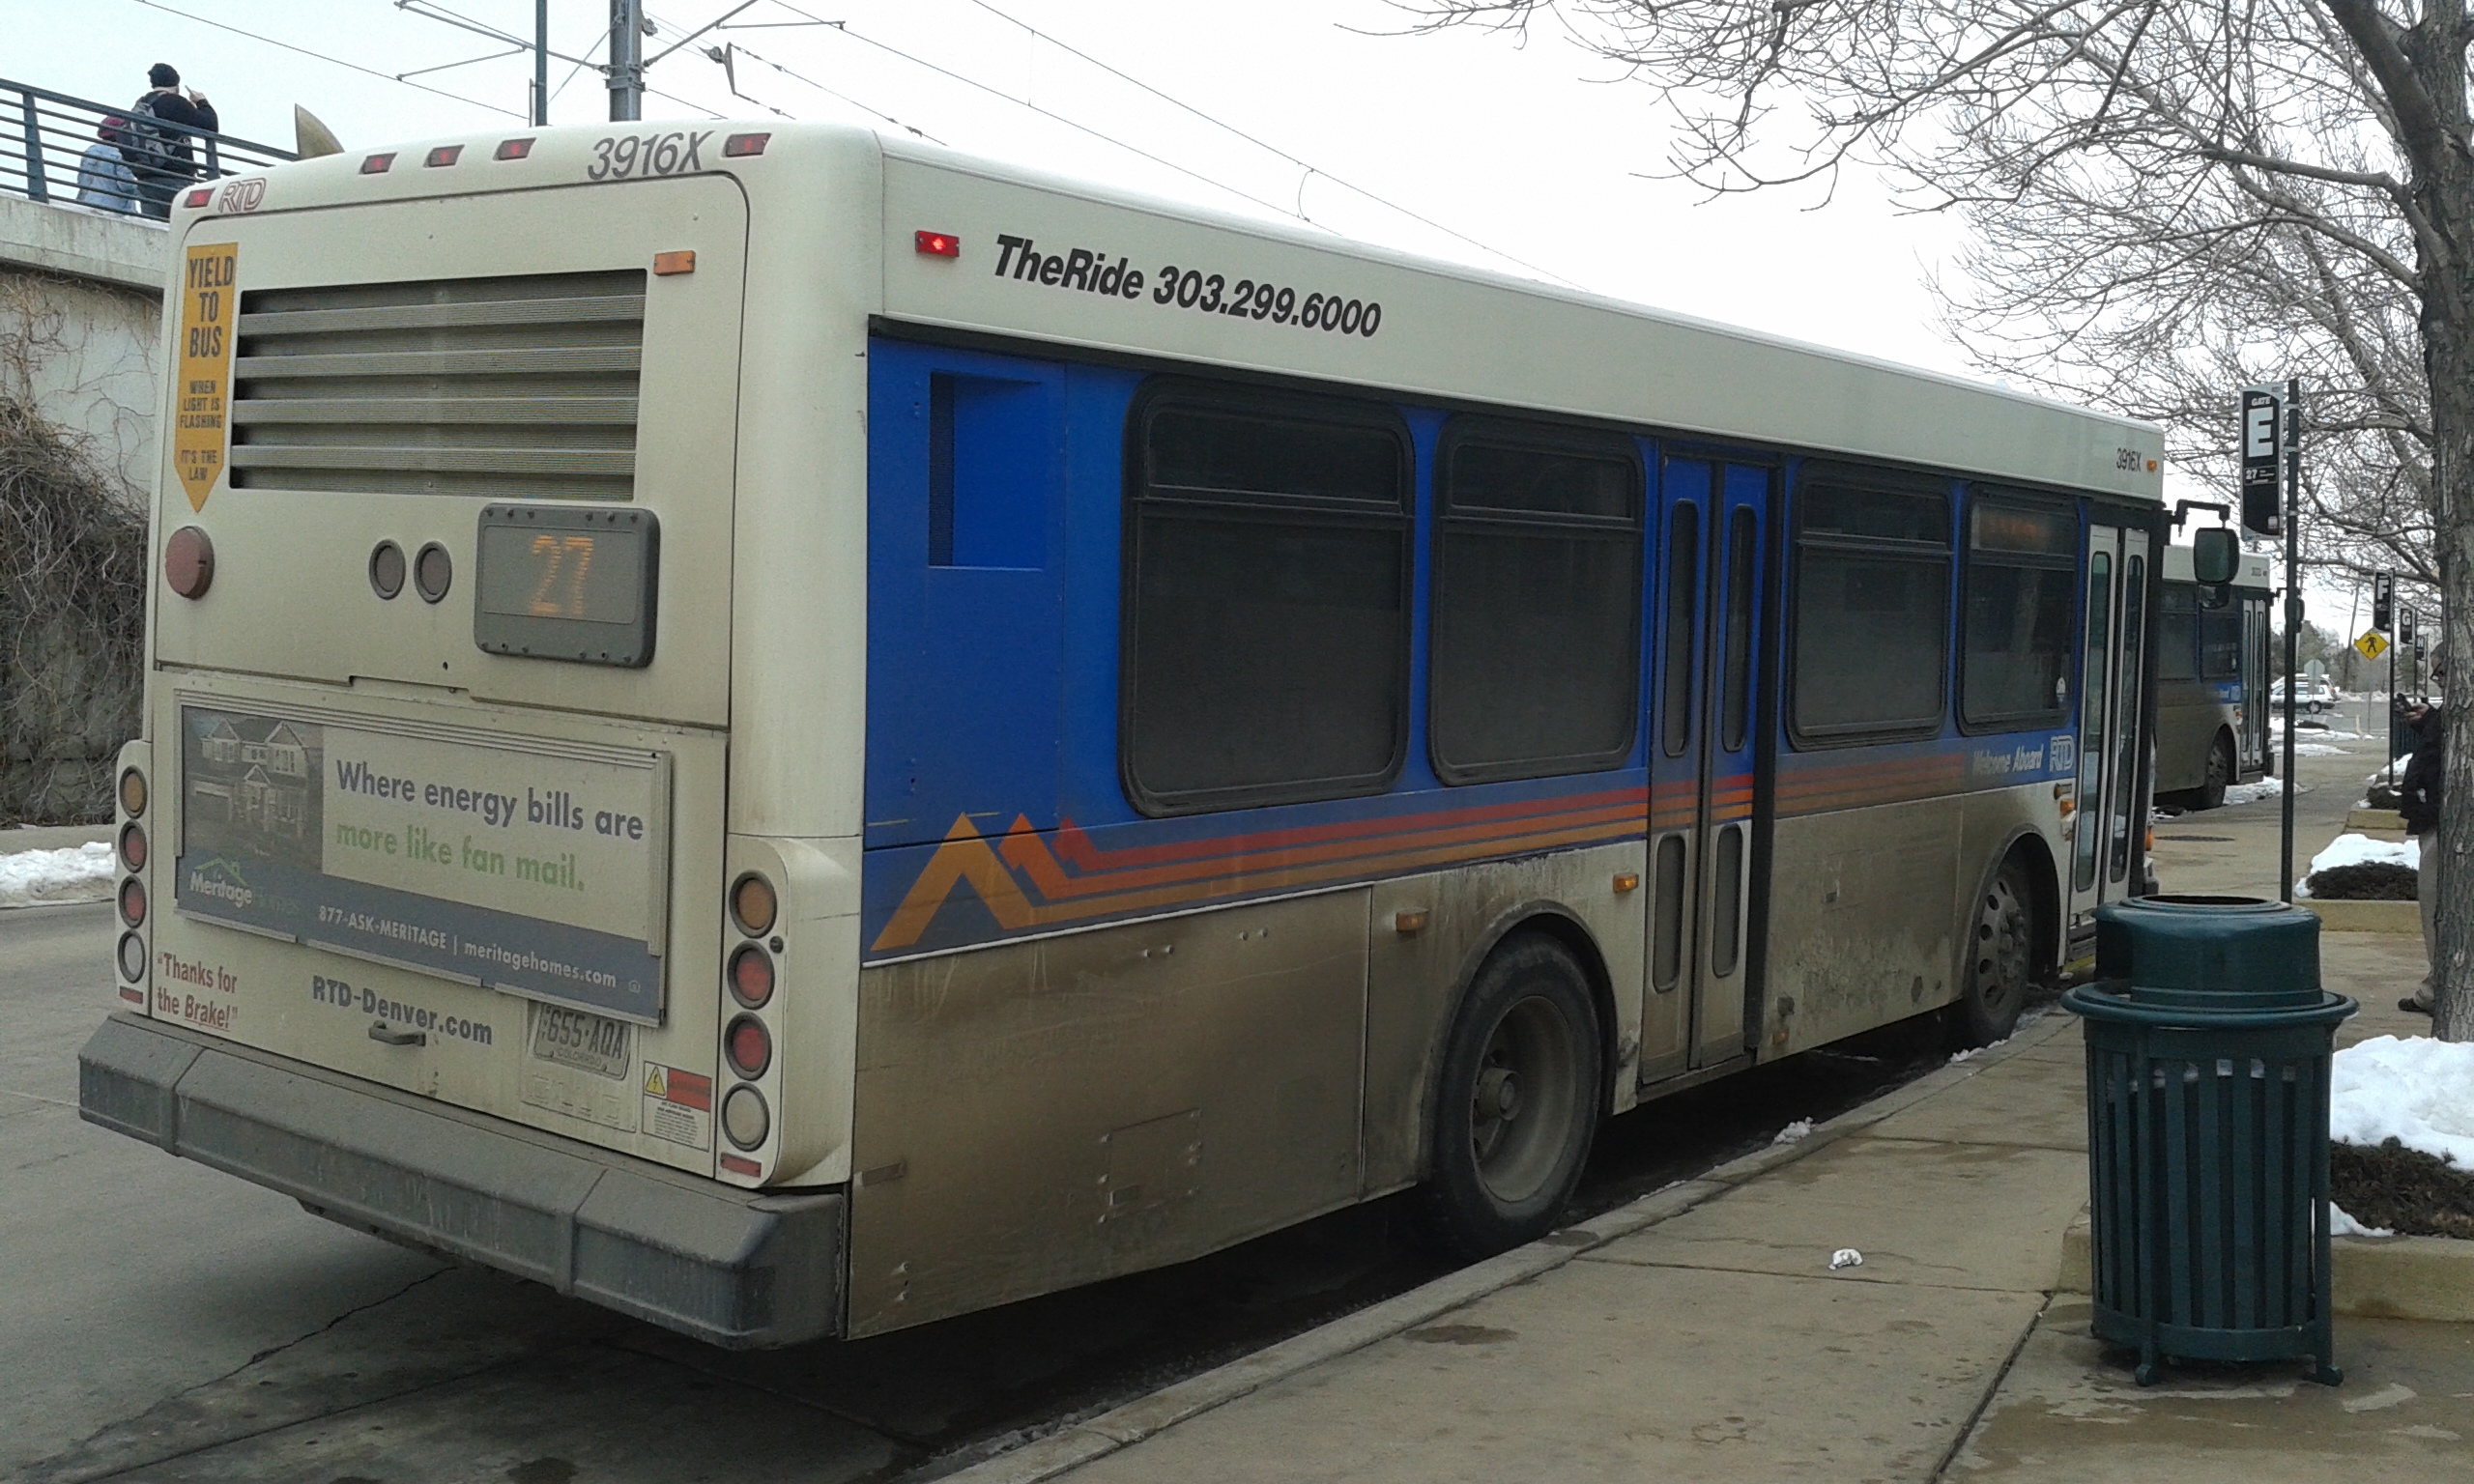 Filertd Theride Bus 3916x Route 27 Englewood Station Jpg